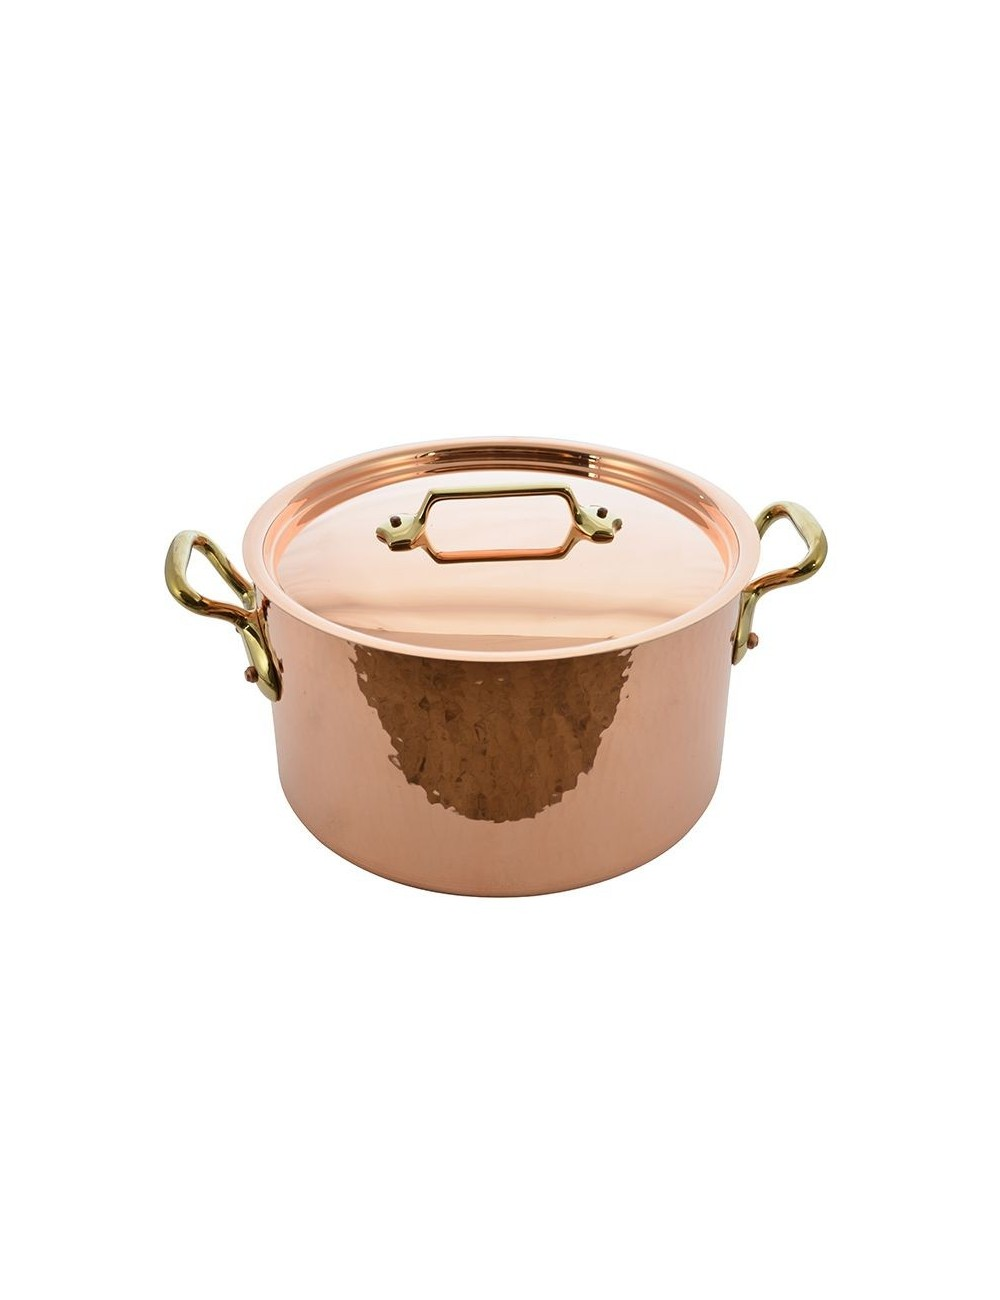 STEWPOT COPPER LINED TIN WITH LID